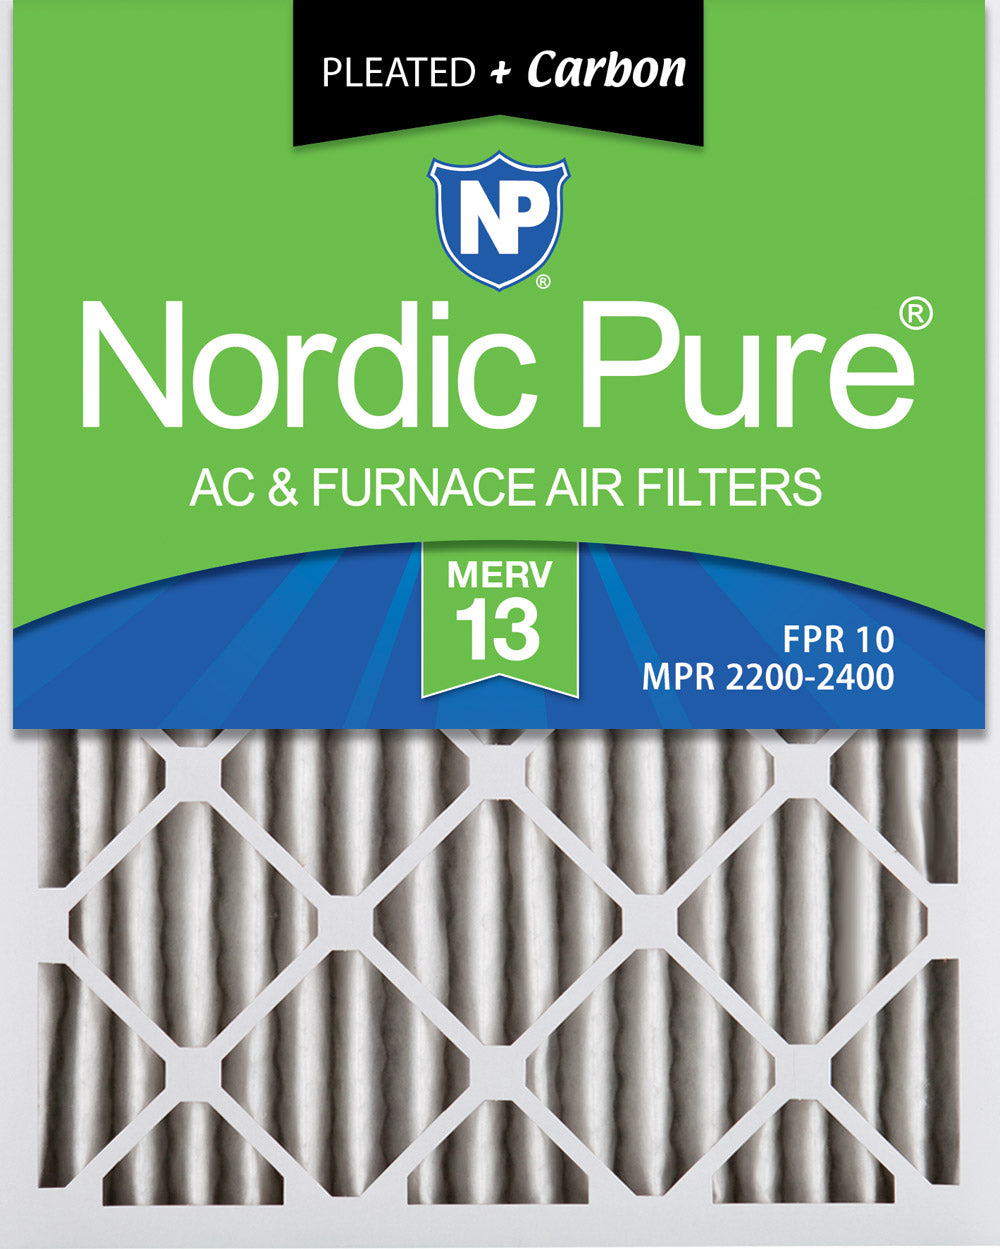 14x20x2 Pleated Air Filters MERV 13 Plus Carbon 12 Pack